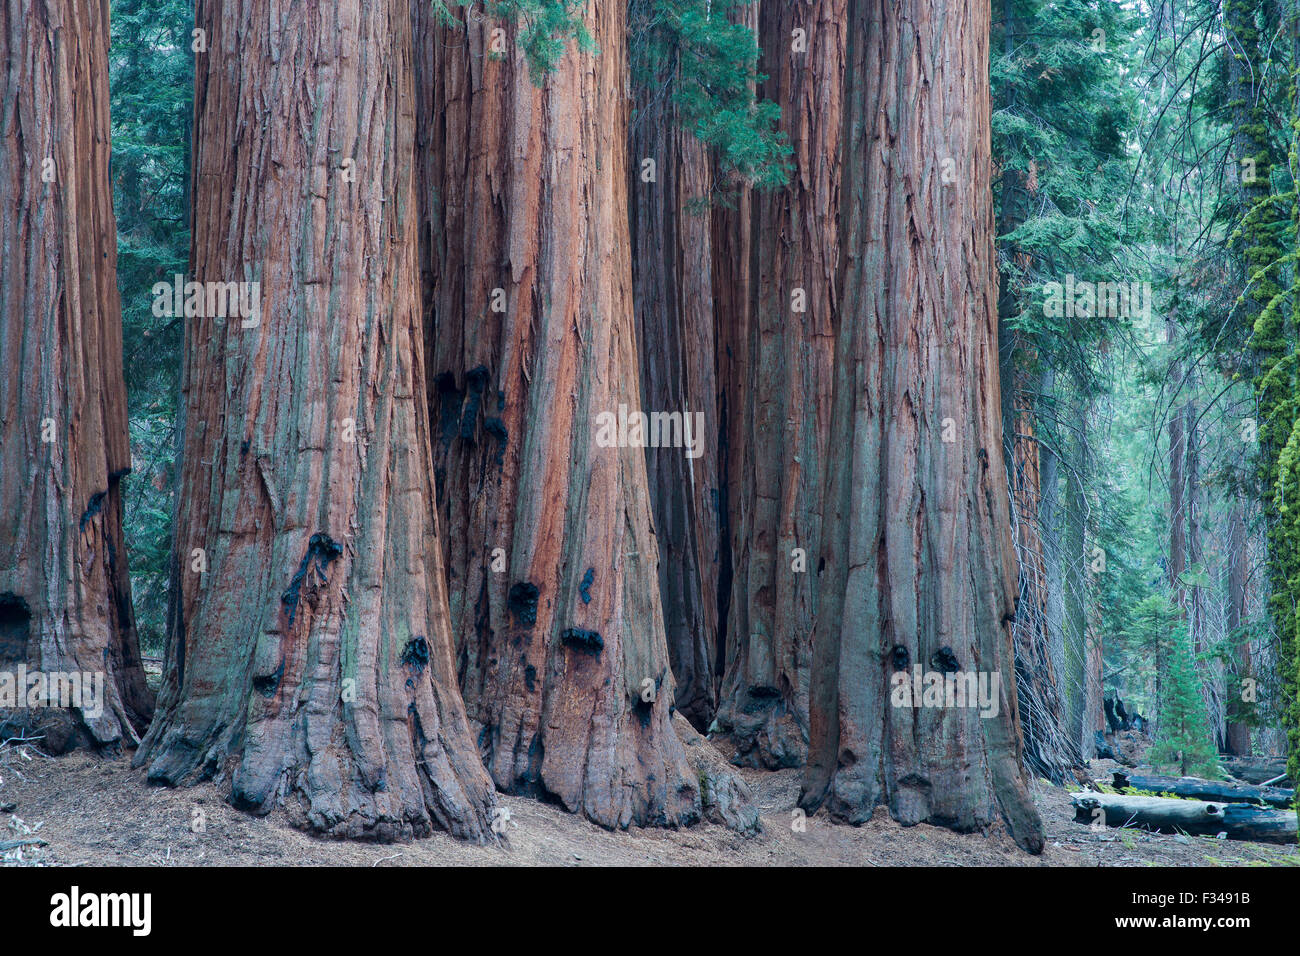 the House Group of giant sequoia trees on the Congress Trail, Sequoia National Park, California, USA Stock Photo